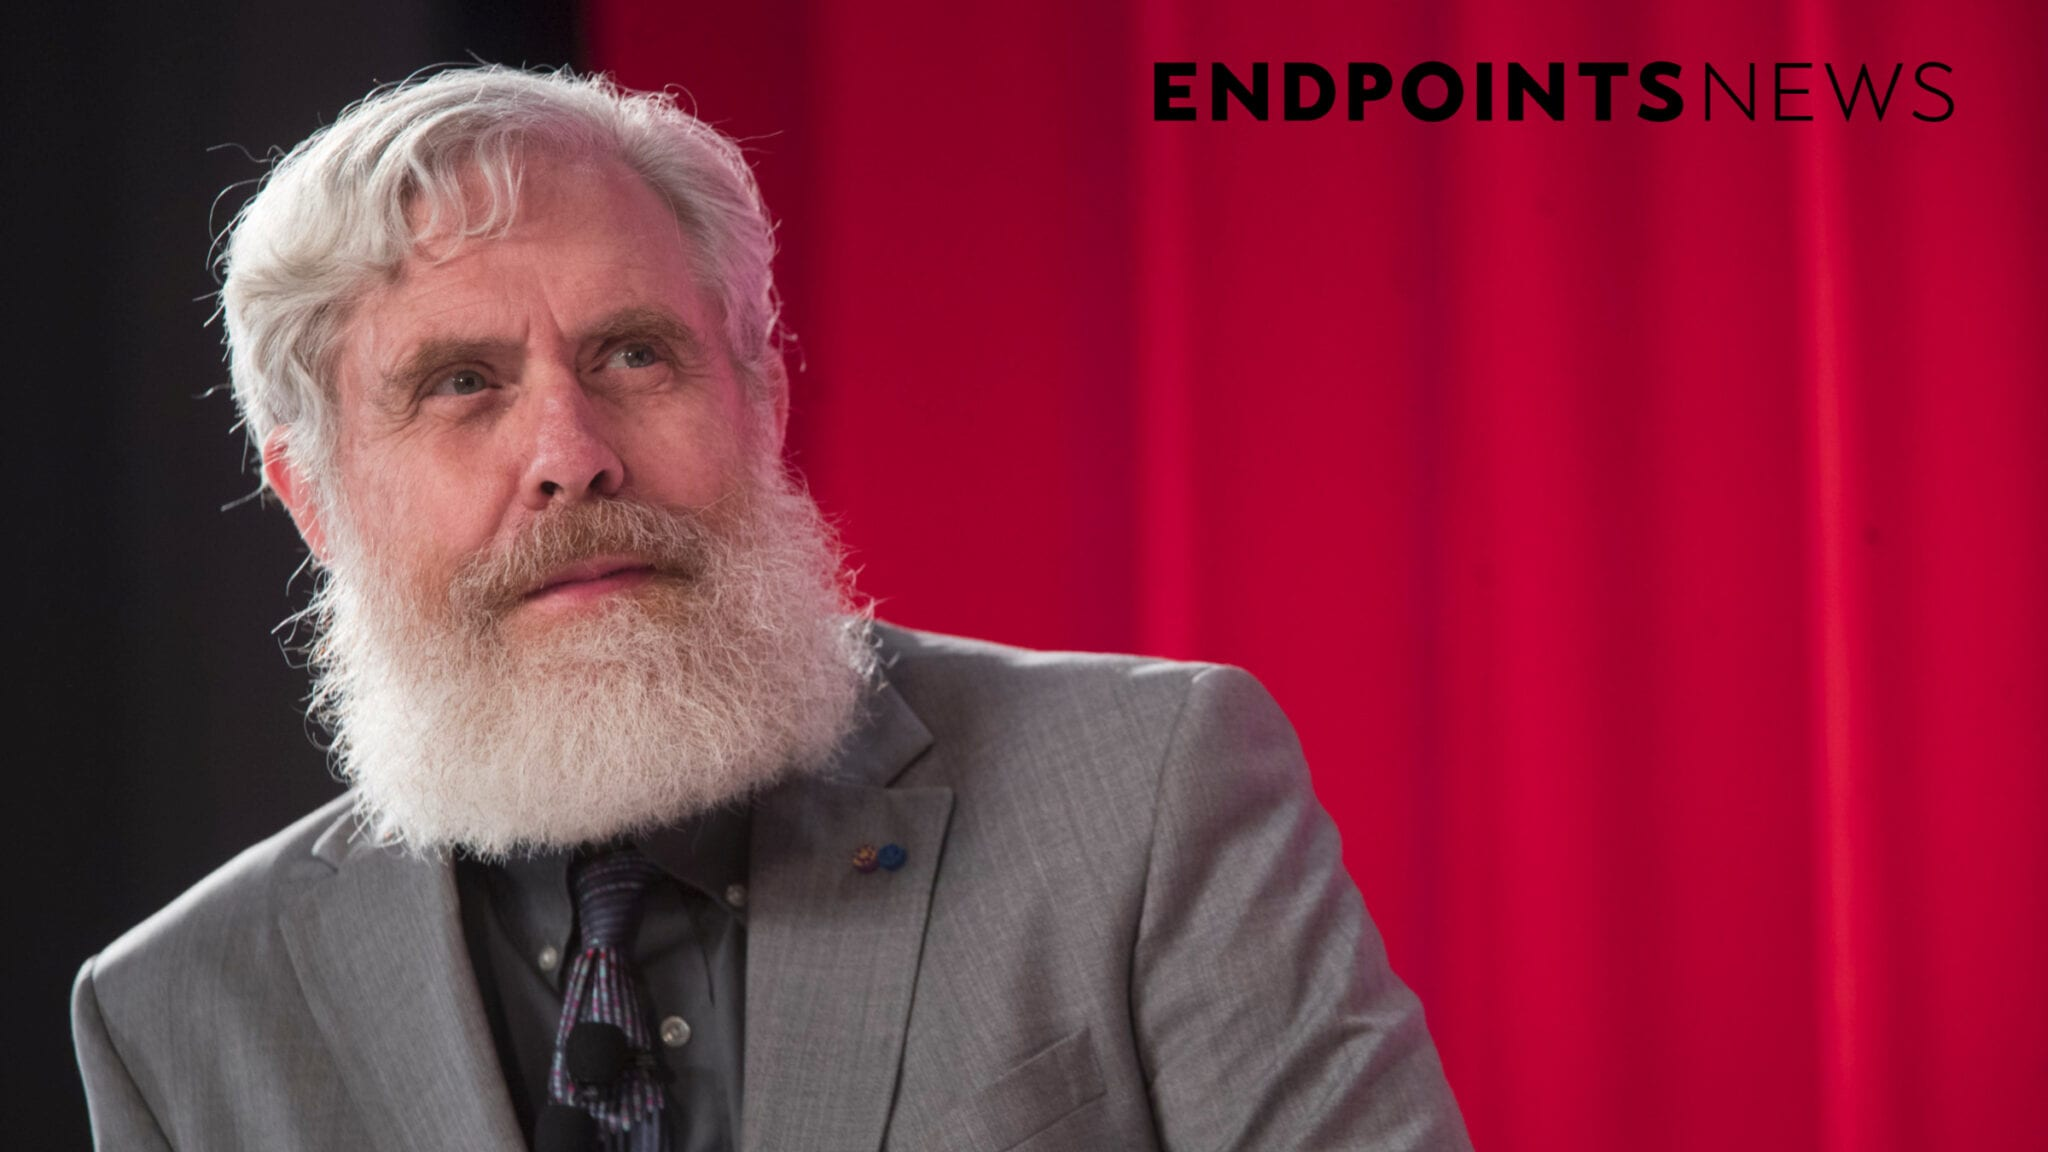 George Church and an entrepreneurial postdoc join the hunt for AAV 2.0 with a new vector-cloaking technology - Endpoints News